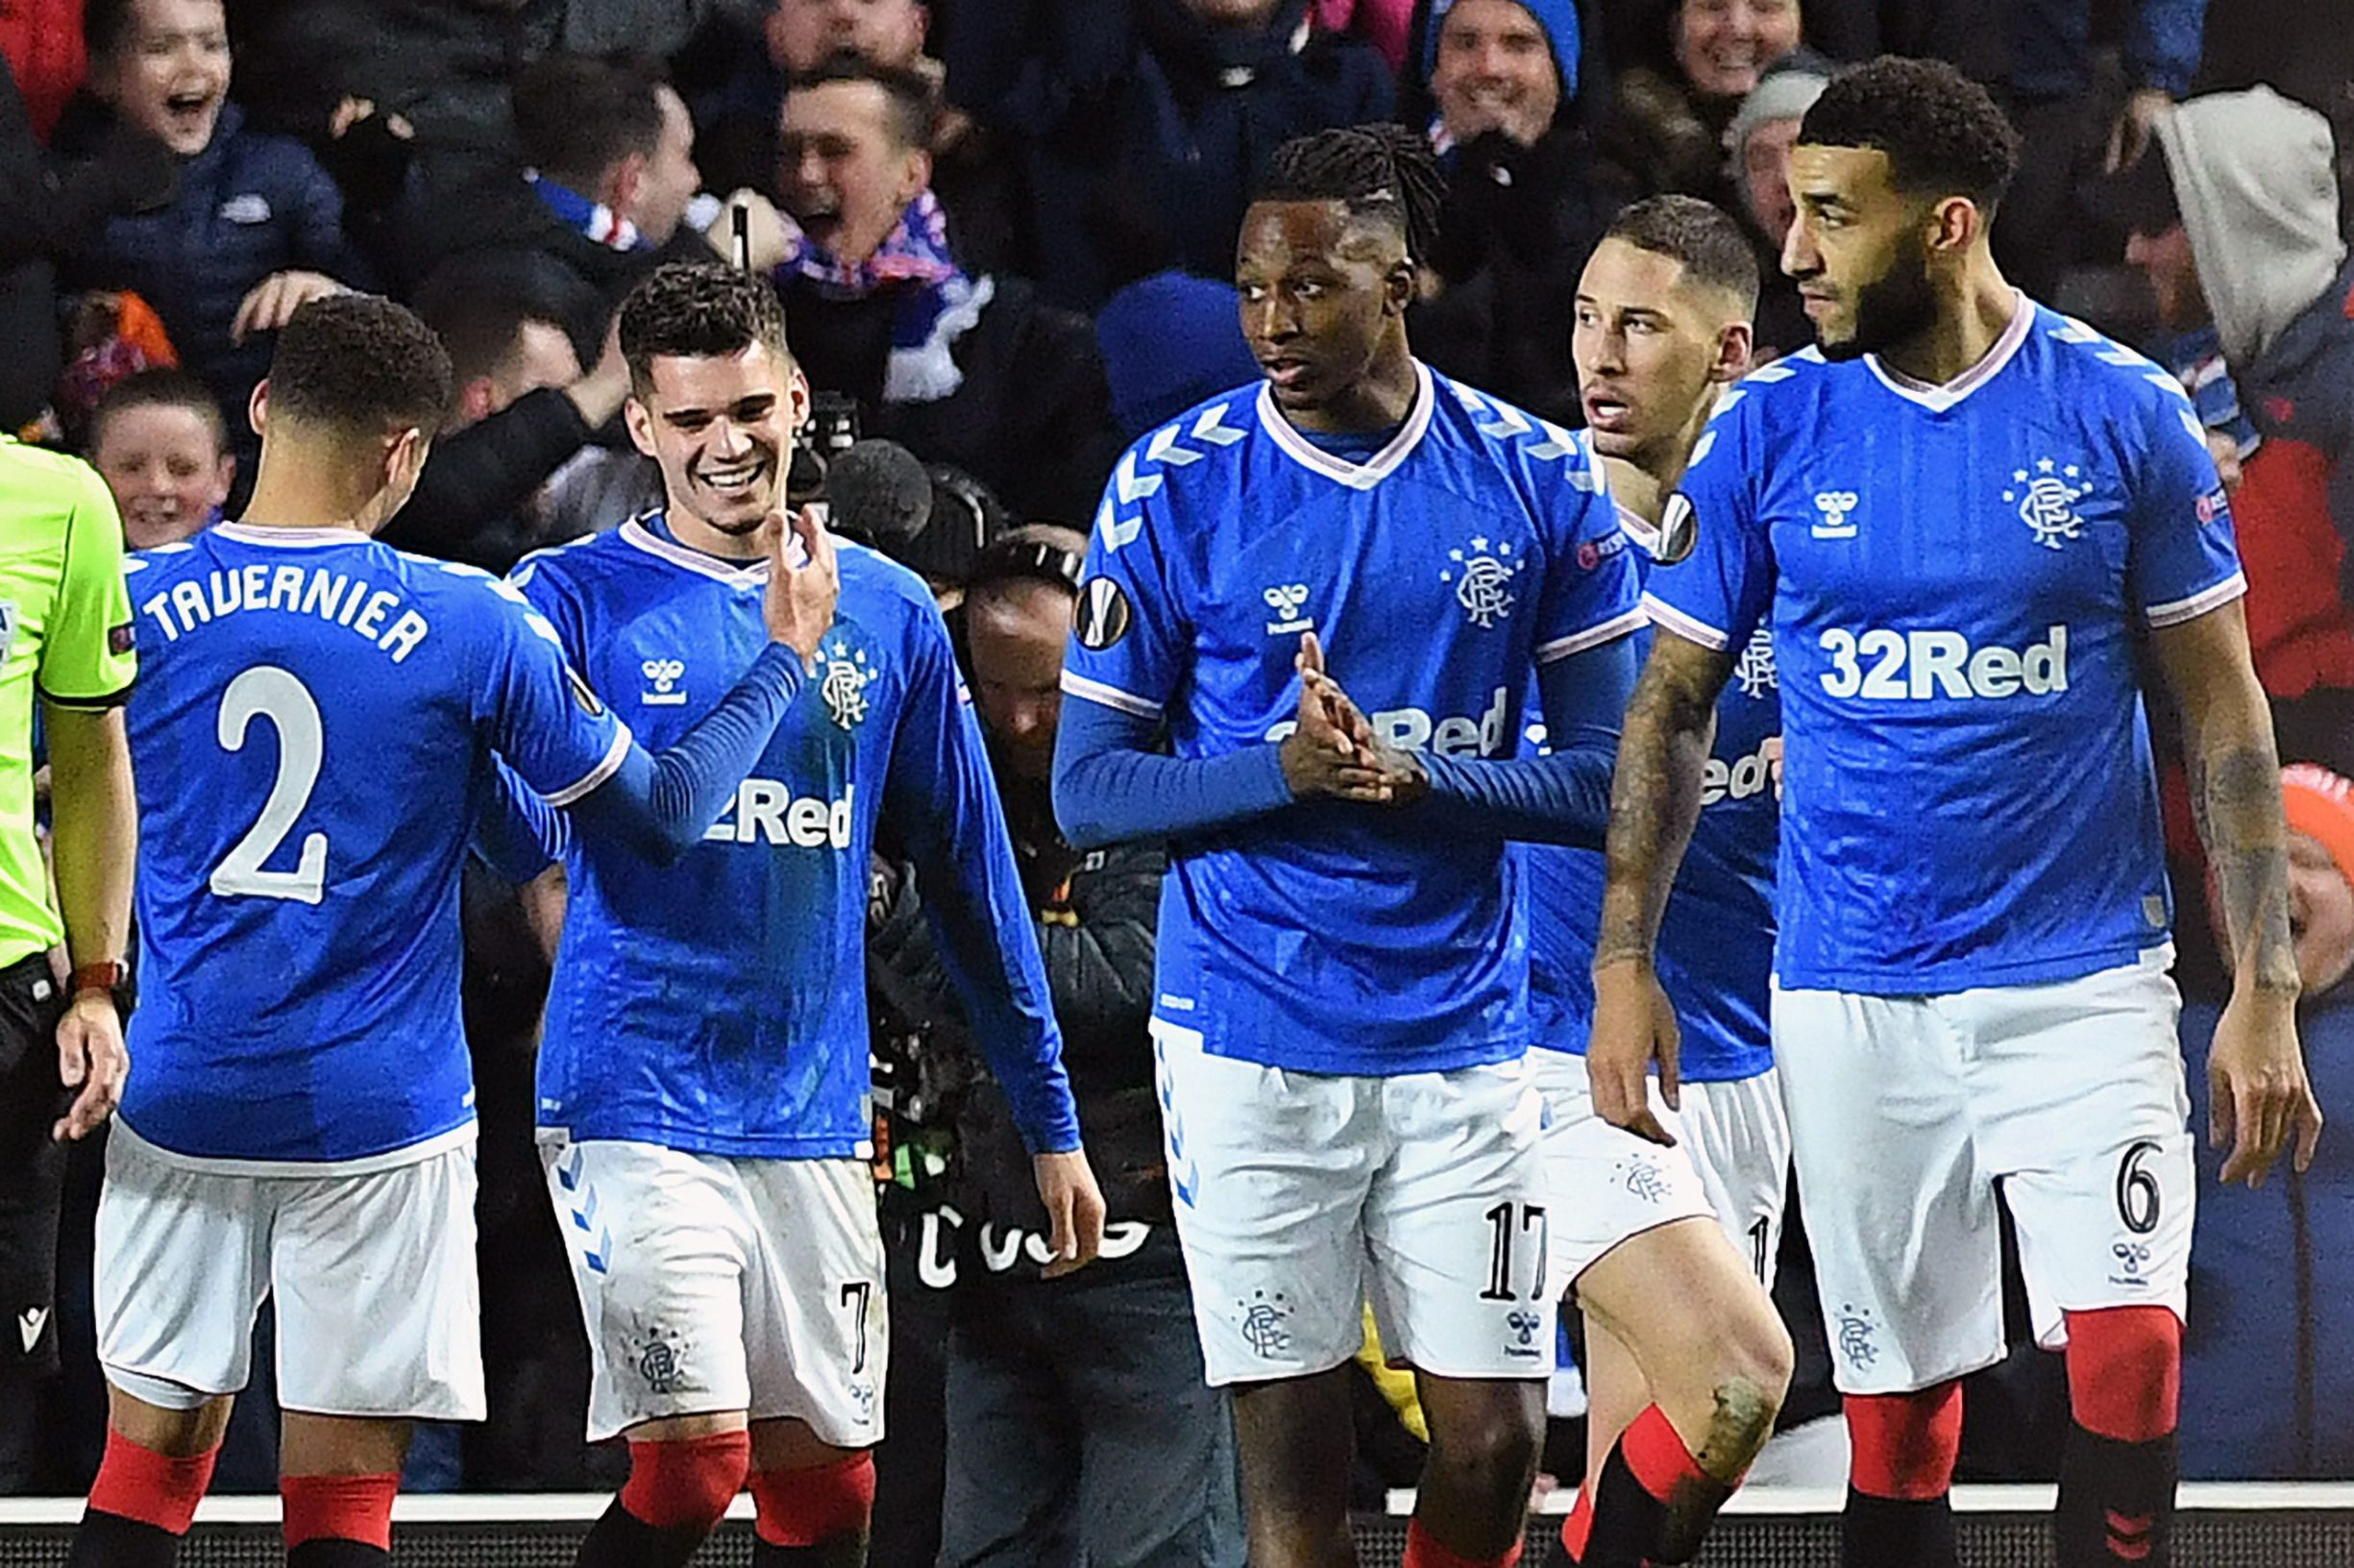 Rangers' Romanian midfielder Ianis Hagi (2L) celebrates scoring his team's third goal during the UEFA Europa League round of 32 first leg football match between Rangers and Sporting Braga at the Ibrox Stadium in Glasgow on February 20, 2020. (Photo by ANDY BUCHANAN / AFP)